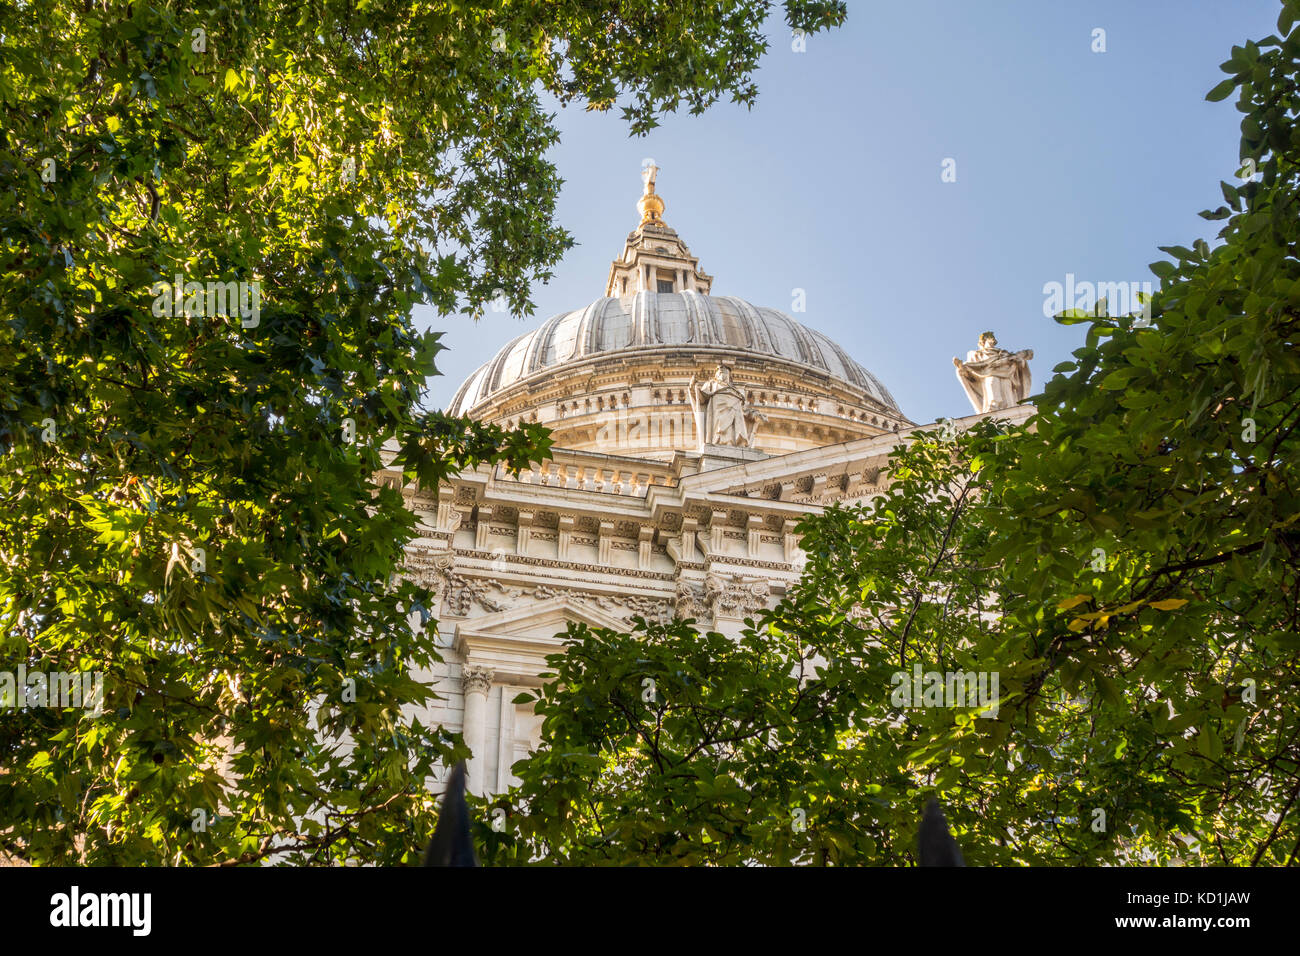 St. Paul's Cathedral dome viewed through trees and leaves in the churchyard garden. City of London, UK - Stock Image